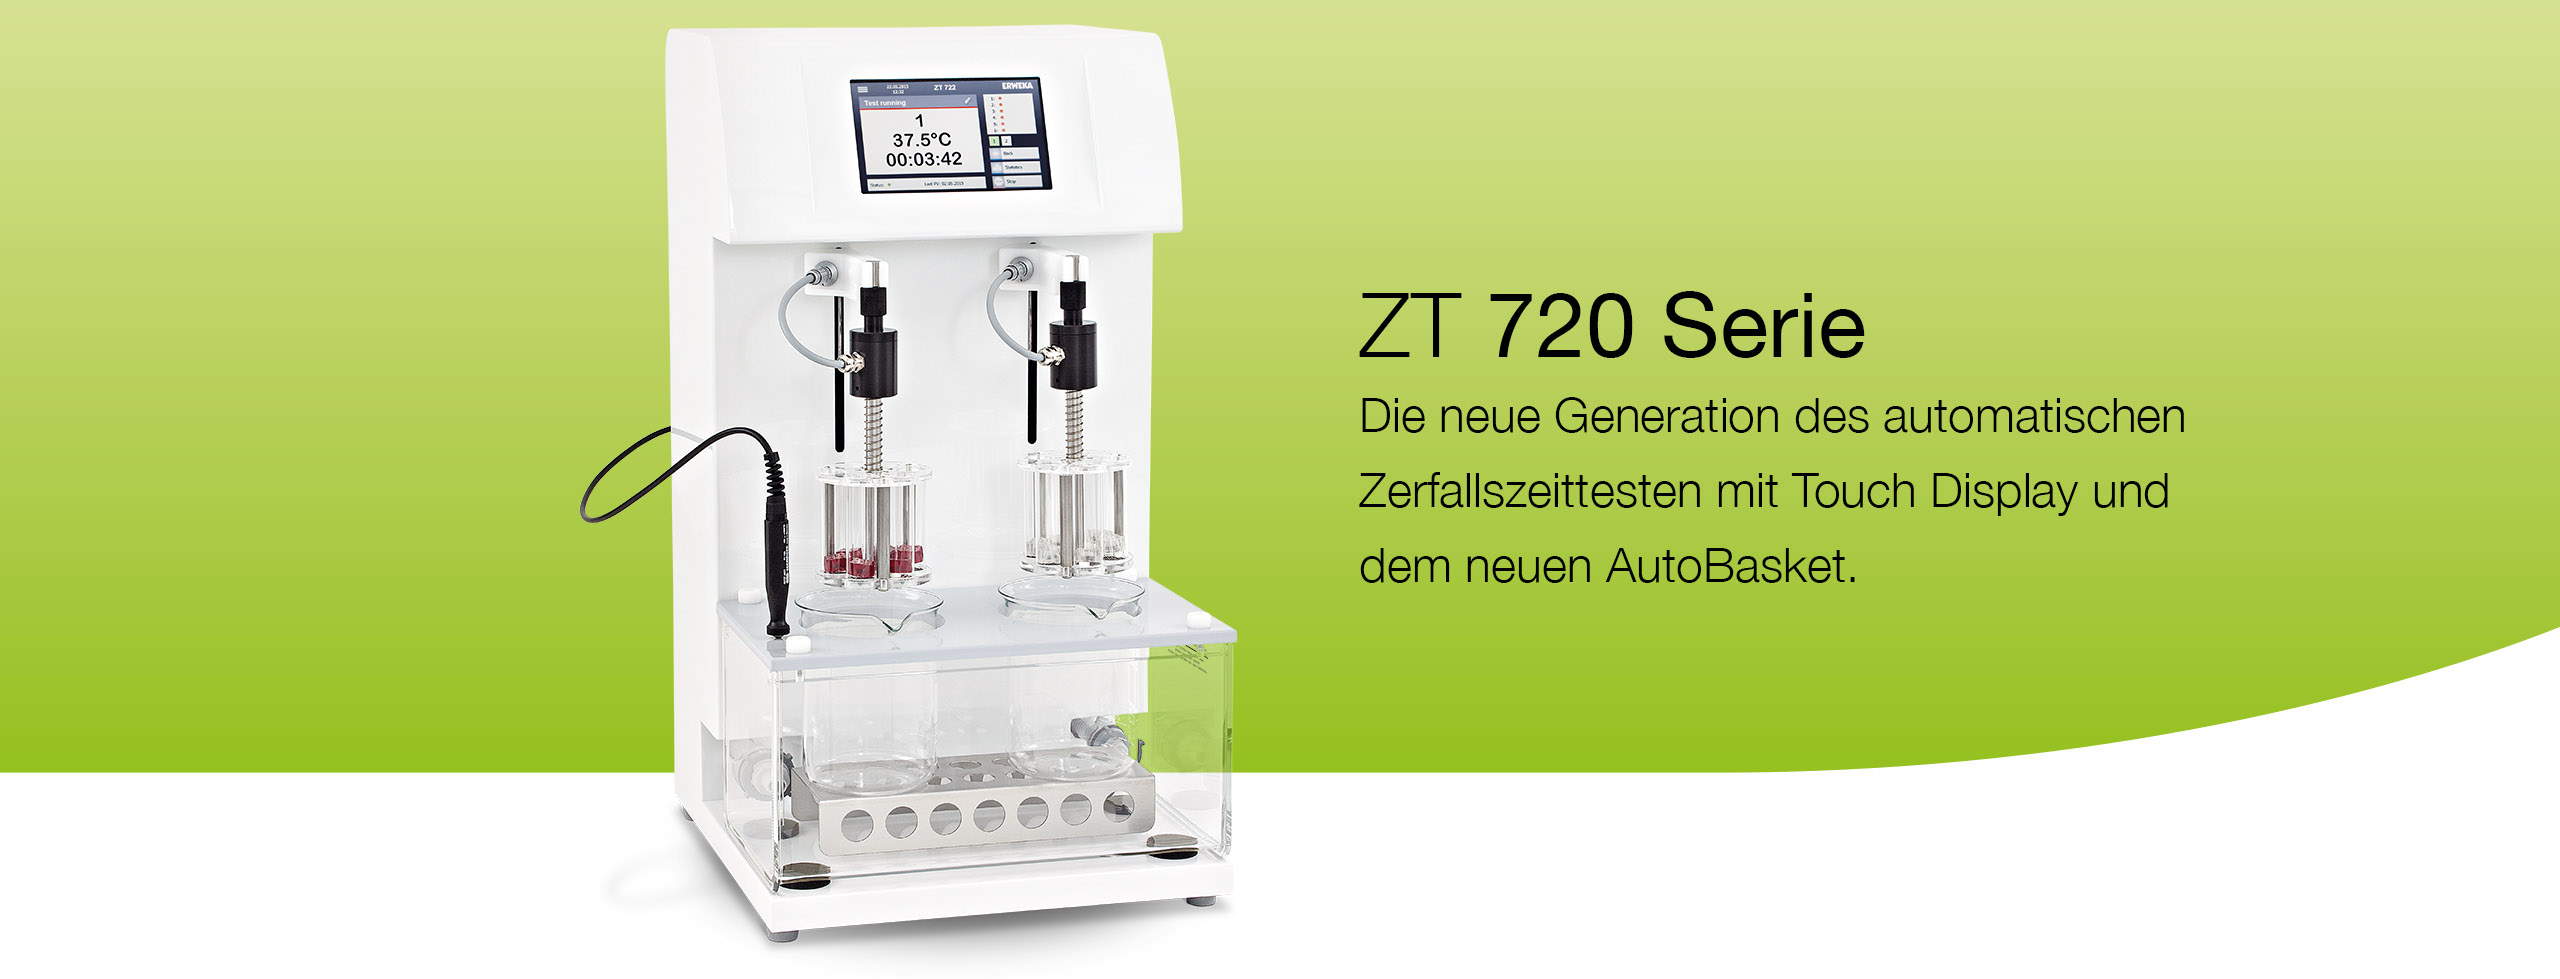 ZT 720 Product Page